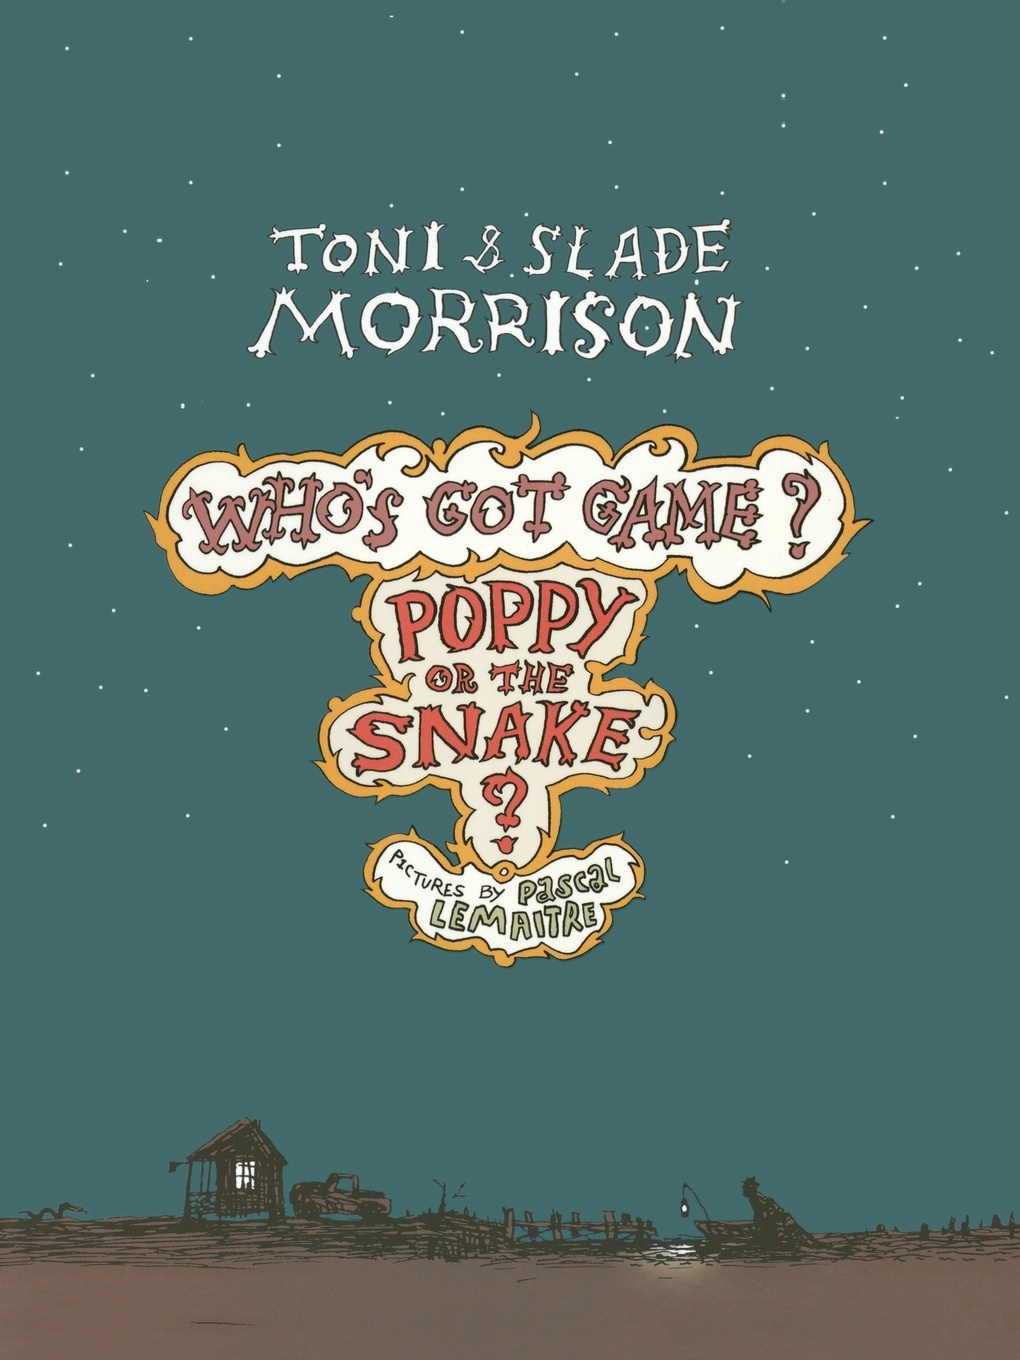 Toni Morrison, Slade Morrison Poppy or the Snake? unknown the hunted outlaw or donald morrison the canadian rob roy